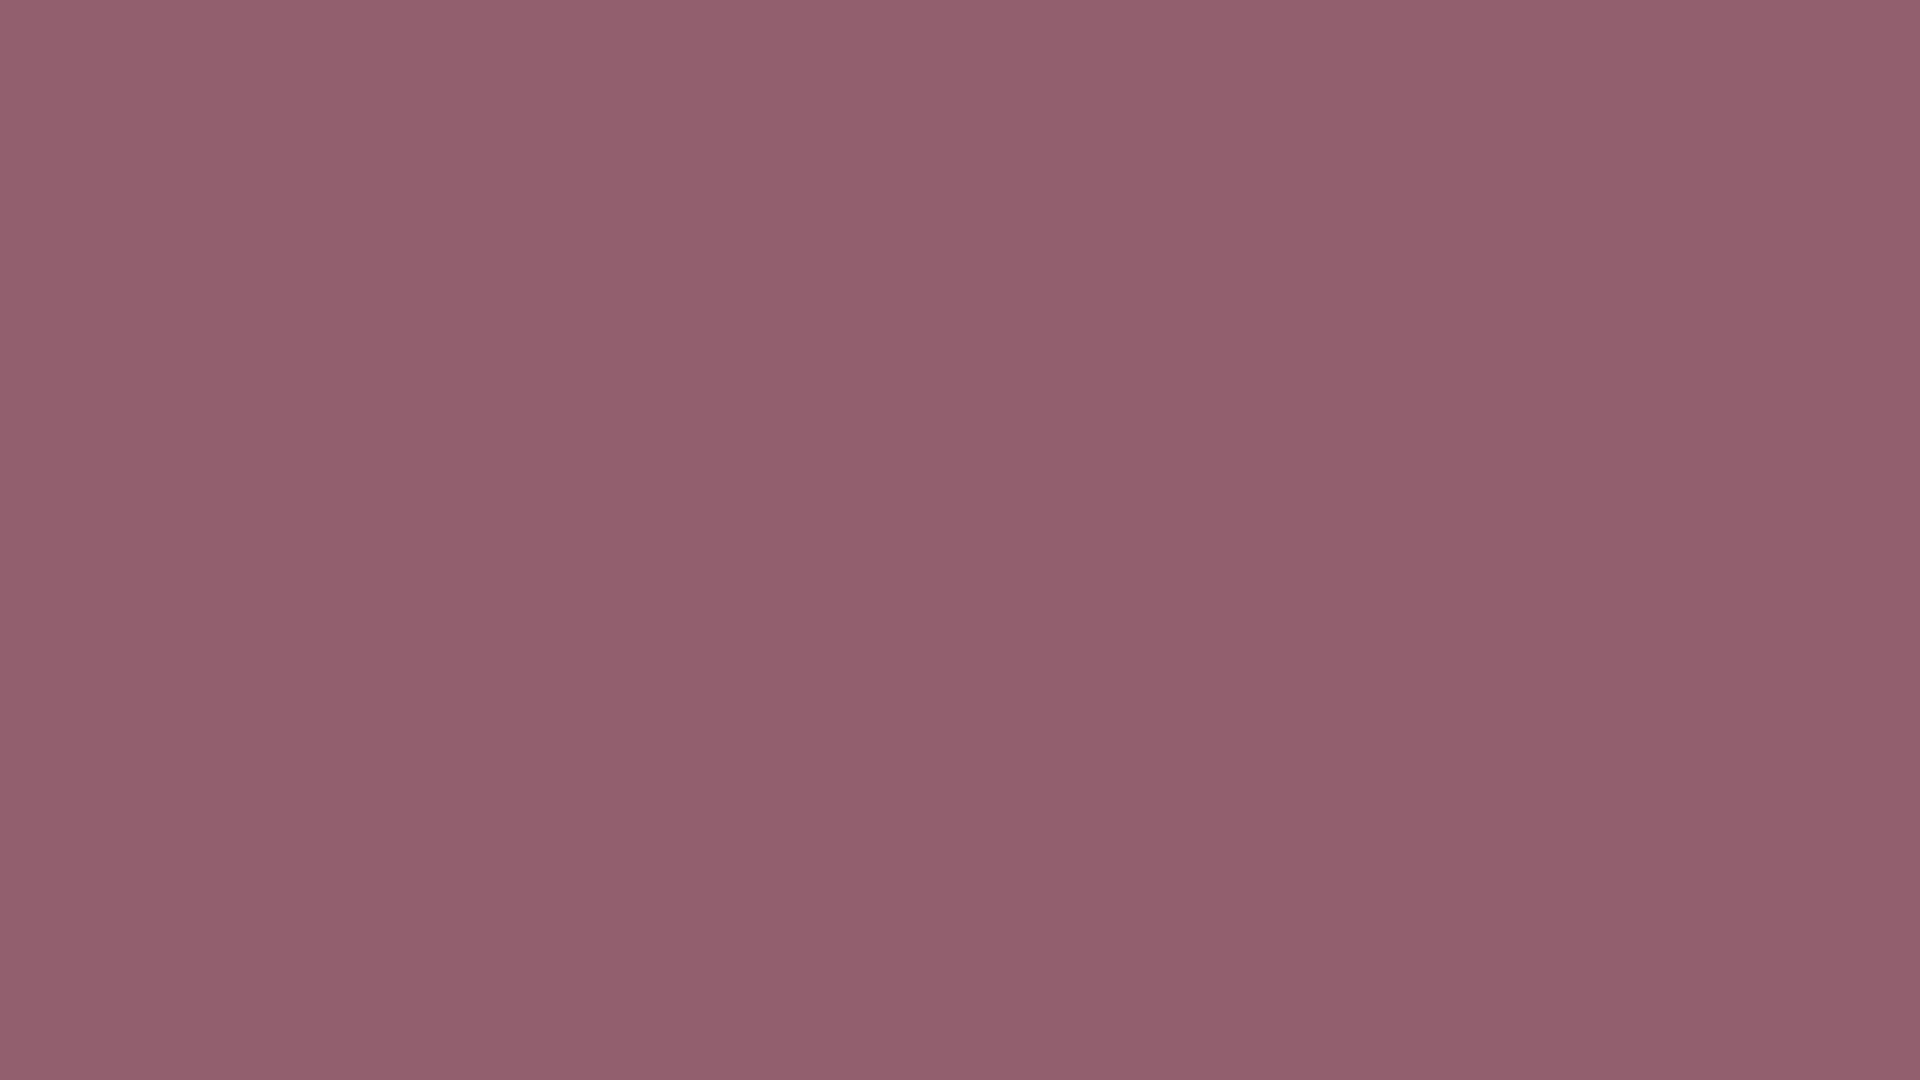 1920x1080 Raspberry Glace Solid Color Background